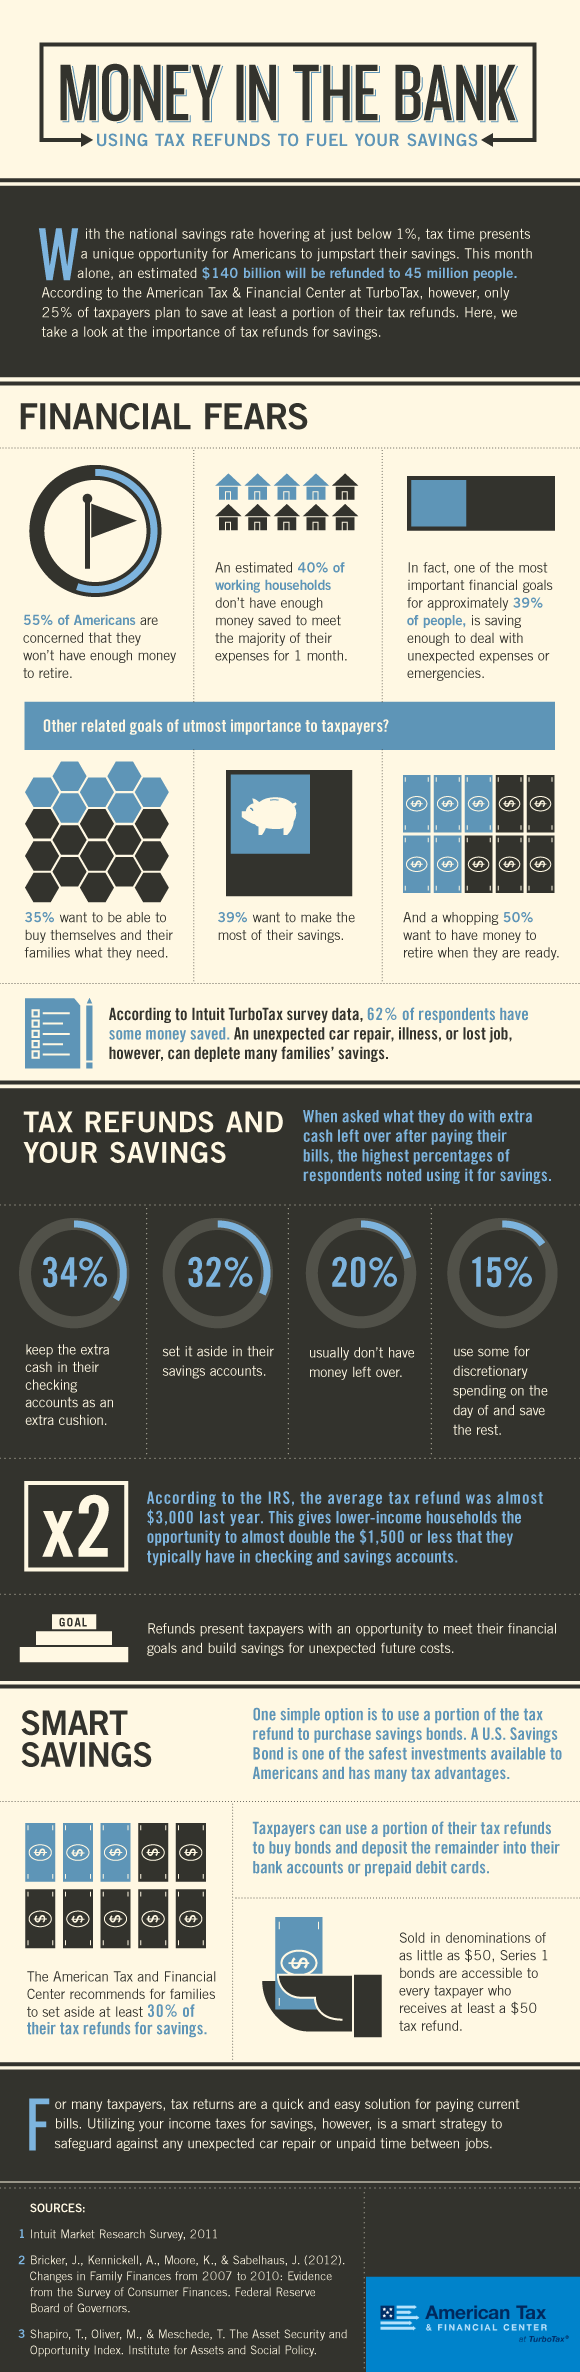 2013-03-05-TurboTaxTaxCenterSavingsRelease.png